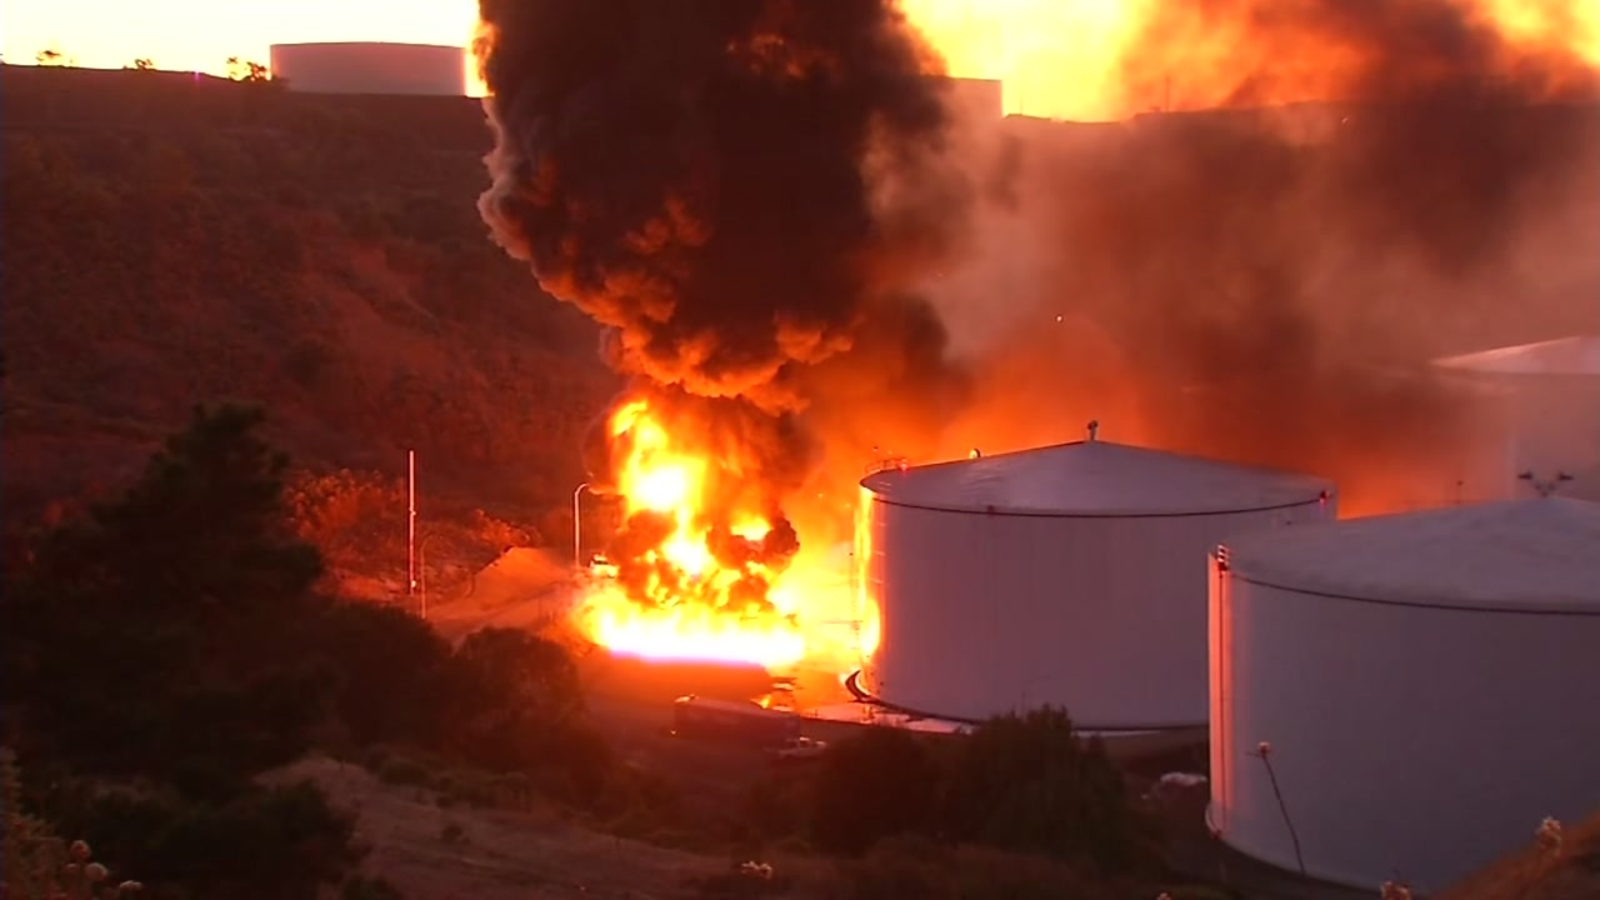 Fire contained at NuStar energy facility in Crockett, cause under investigation